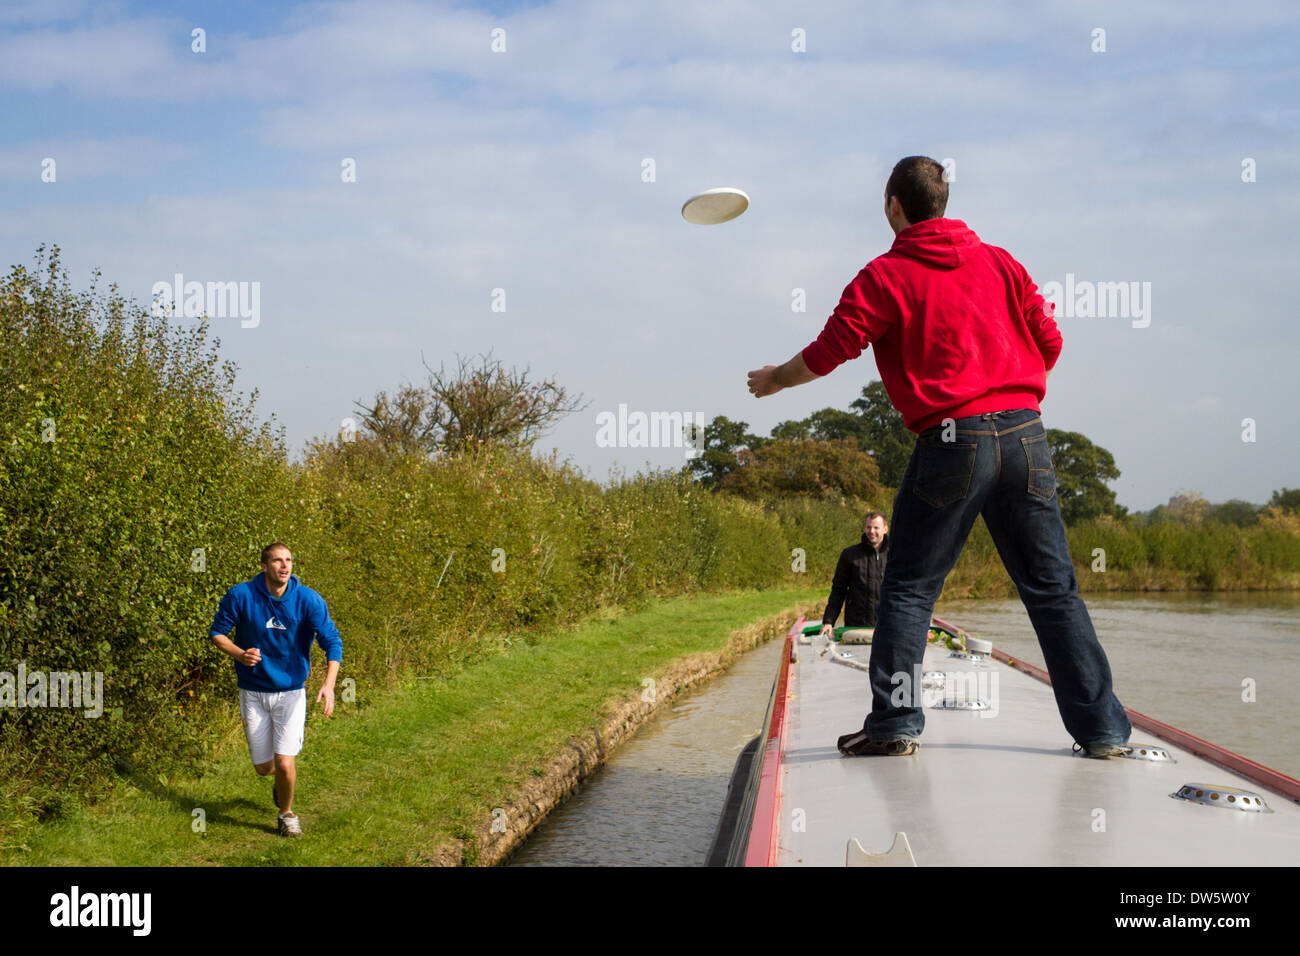 A group of men playing Frisbee on a narrowboat - Stock Image